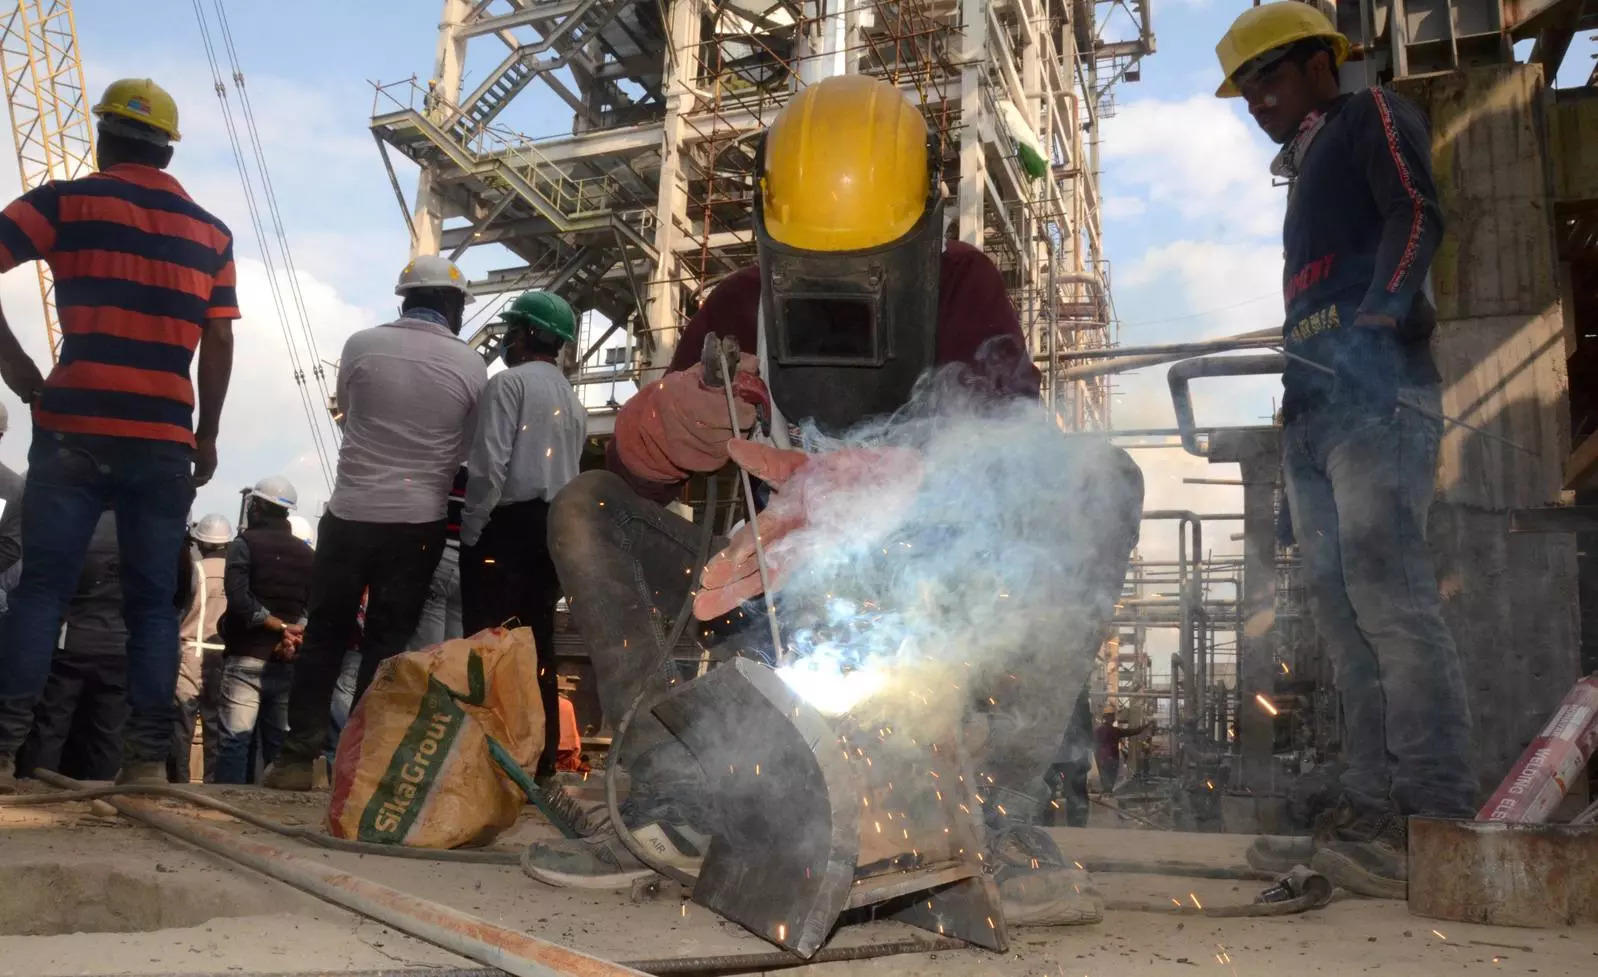 Constructions and Petrochemicals saw 22% growth in talent demand during second wave